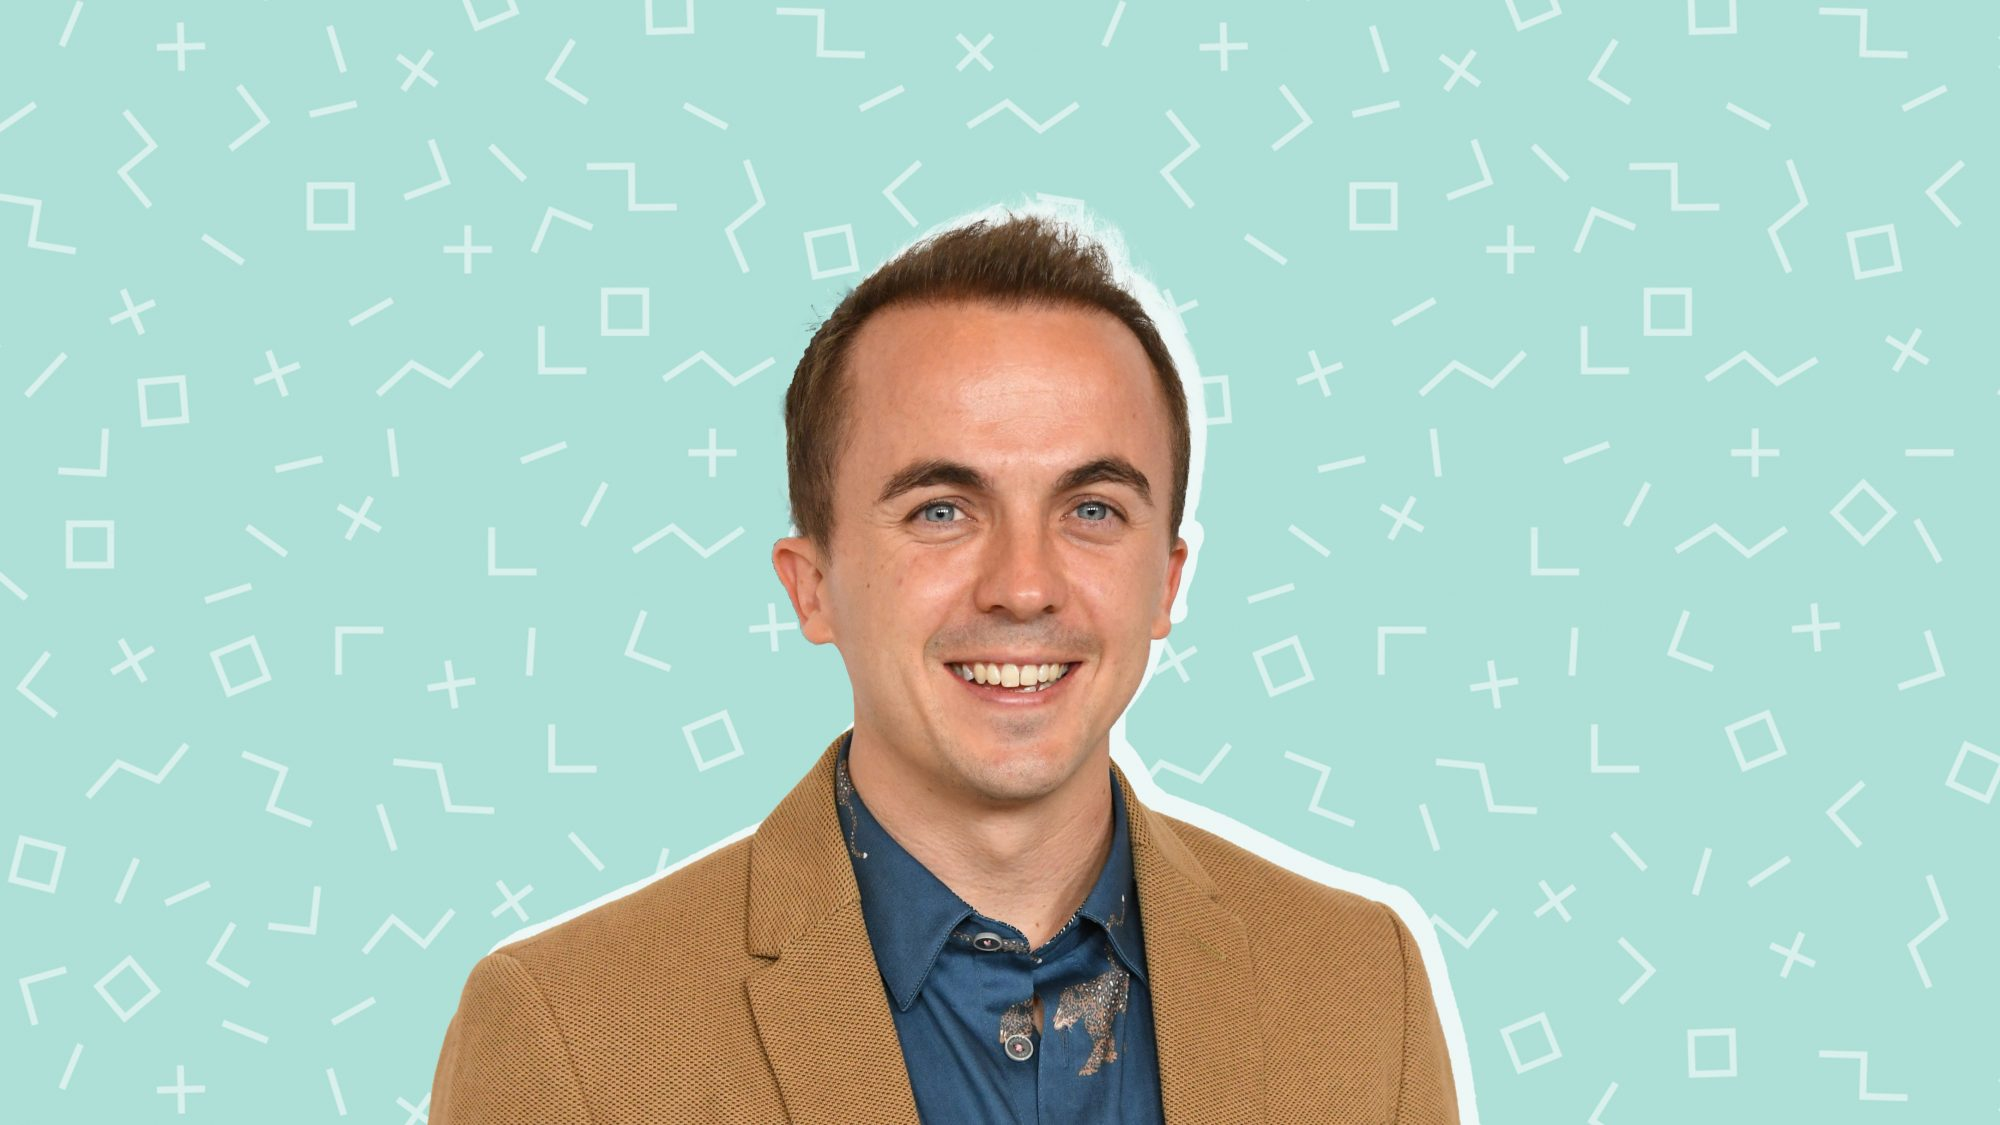 frankie-muniz-memory-loss frankie-muniz memory-loss